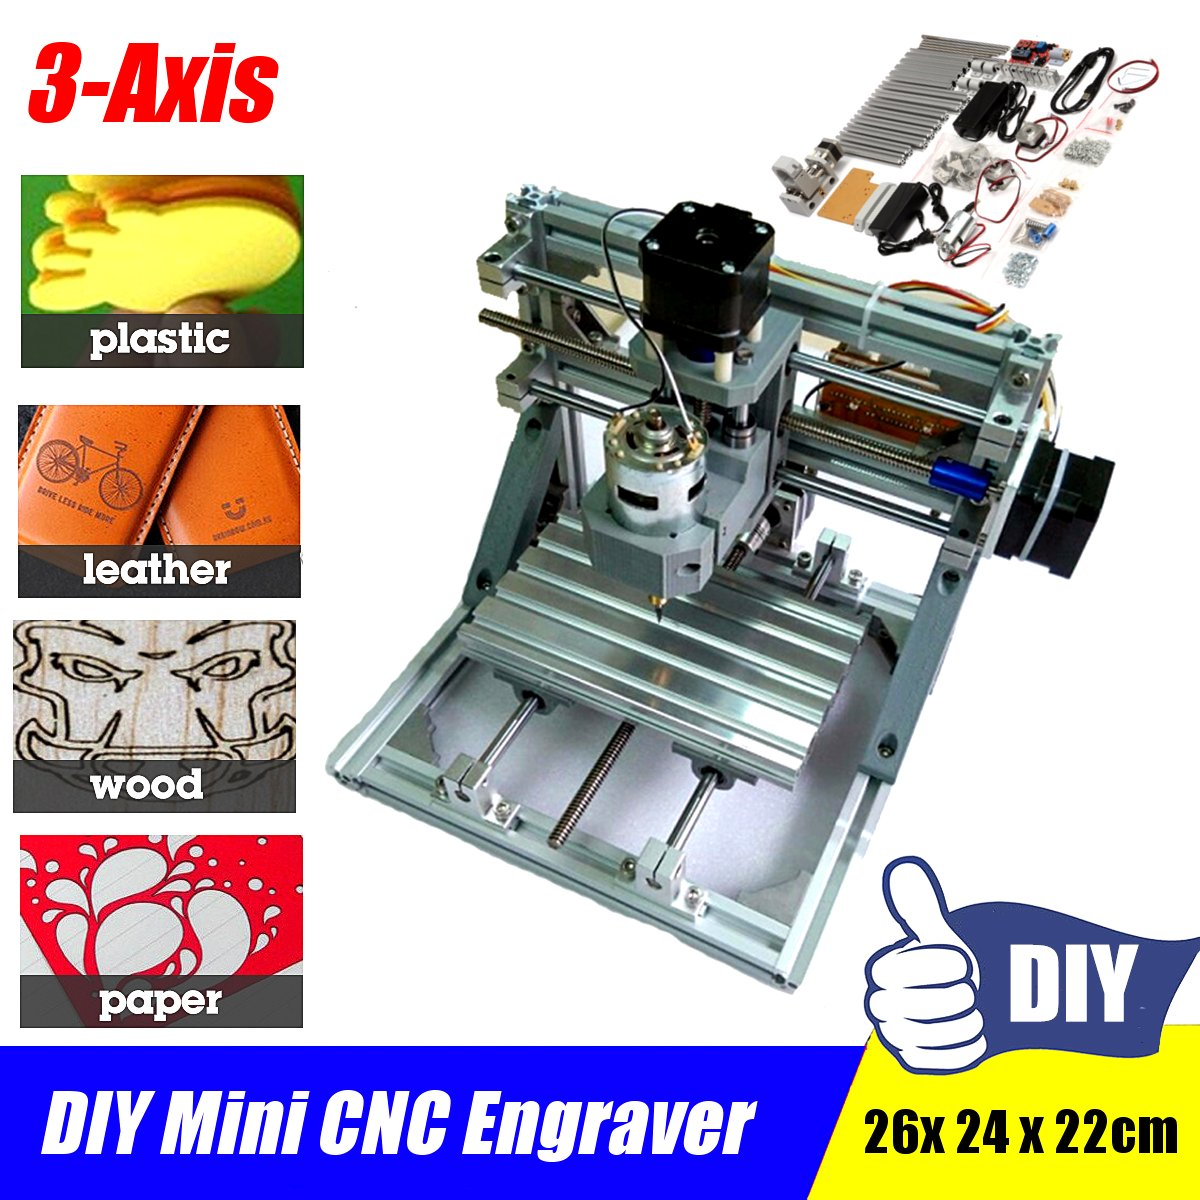 3-Axis Mini CNC Desktop Wood Router Engraver PCB PVC Milling Wood Carving Carving Machine GRBL DIY Set Kit